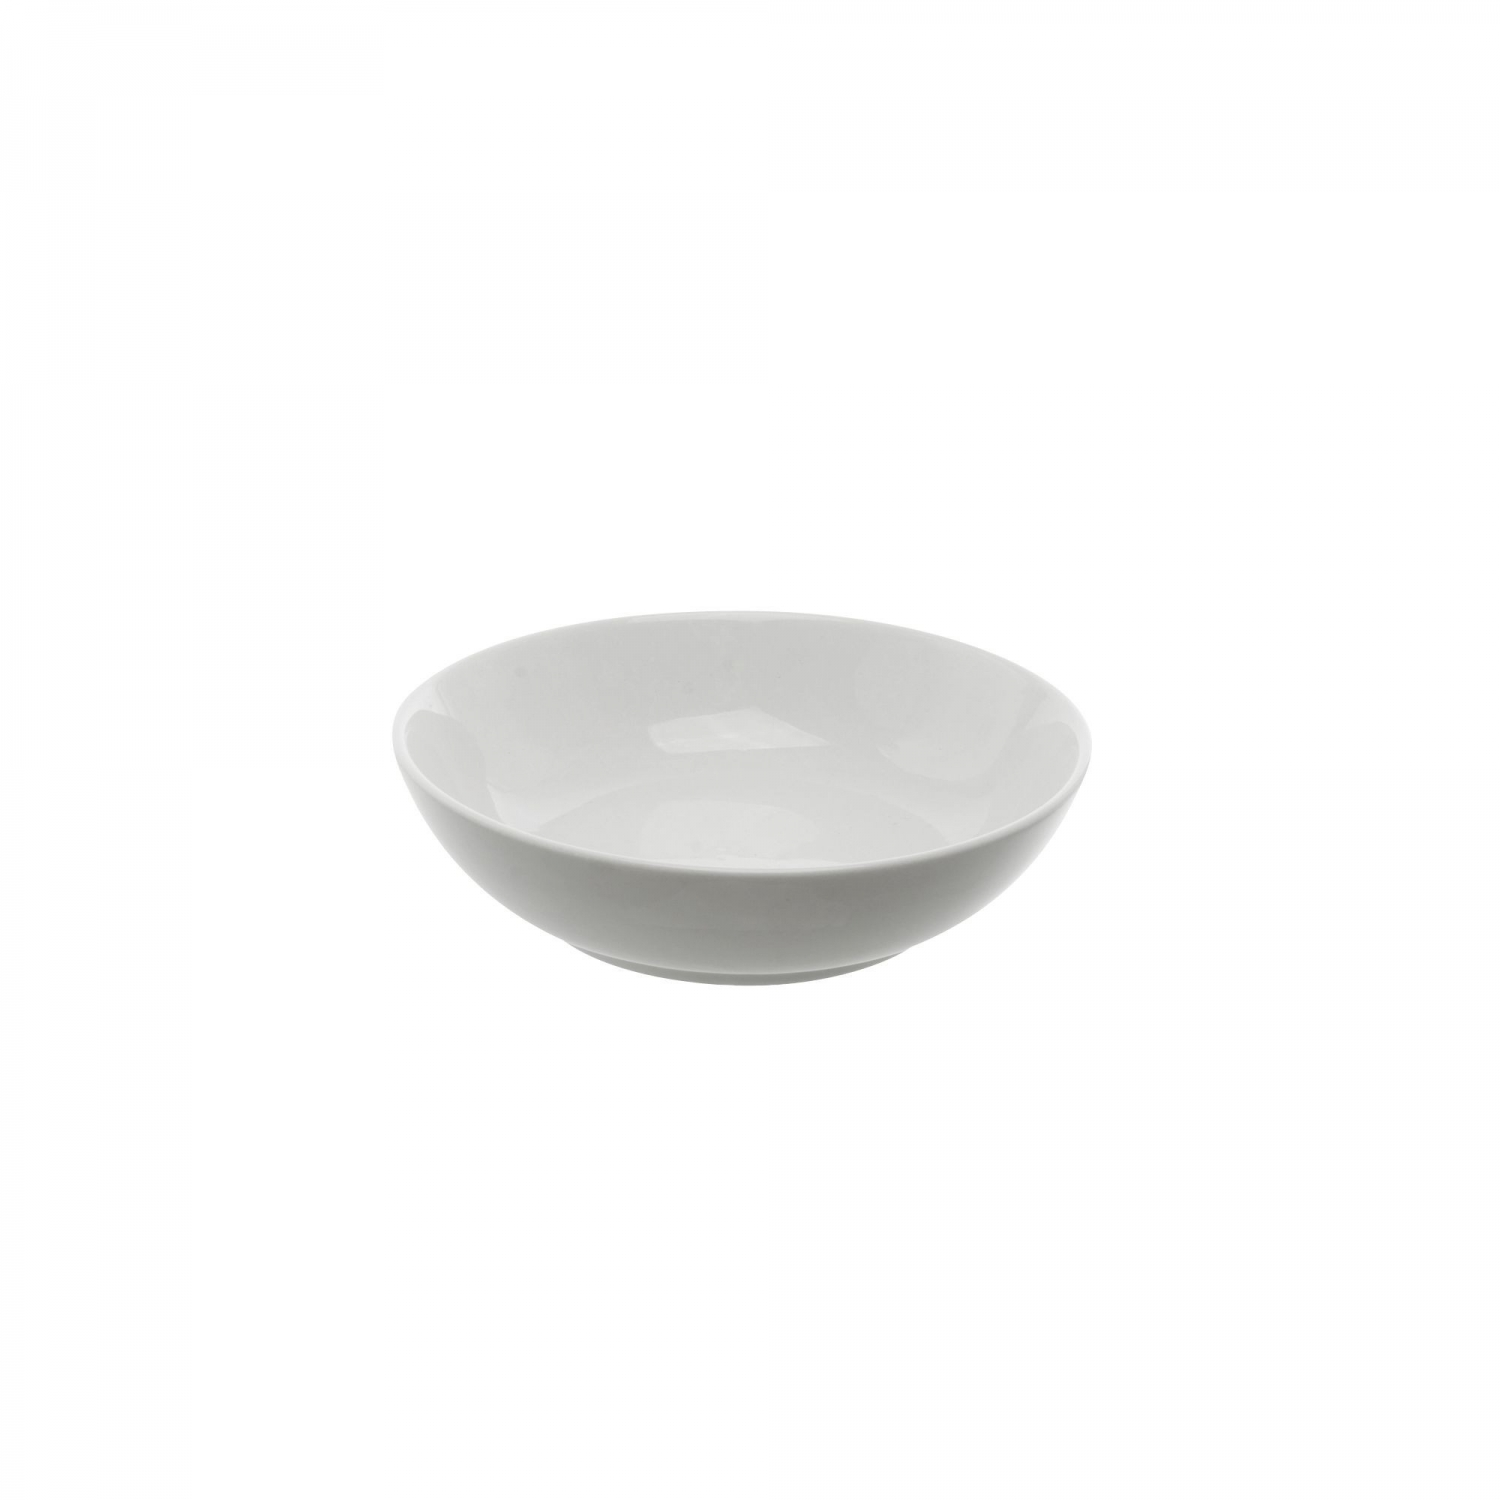 10 Strawberry Street WTR-3SAU Whittier Sauce Dish 2 oz.